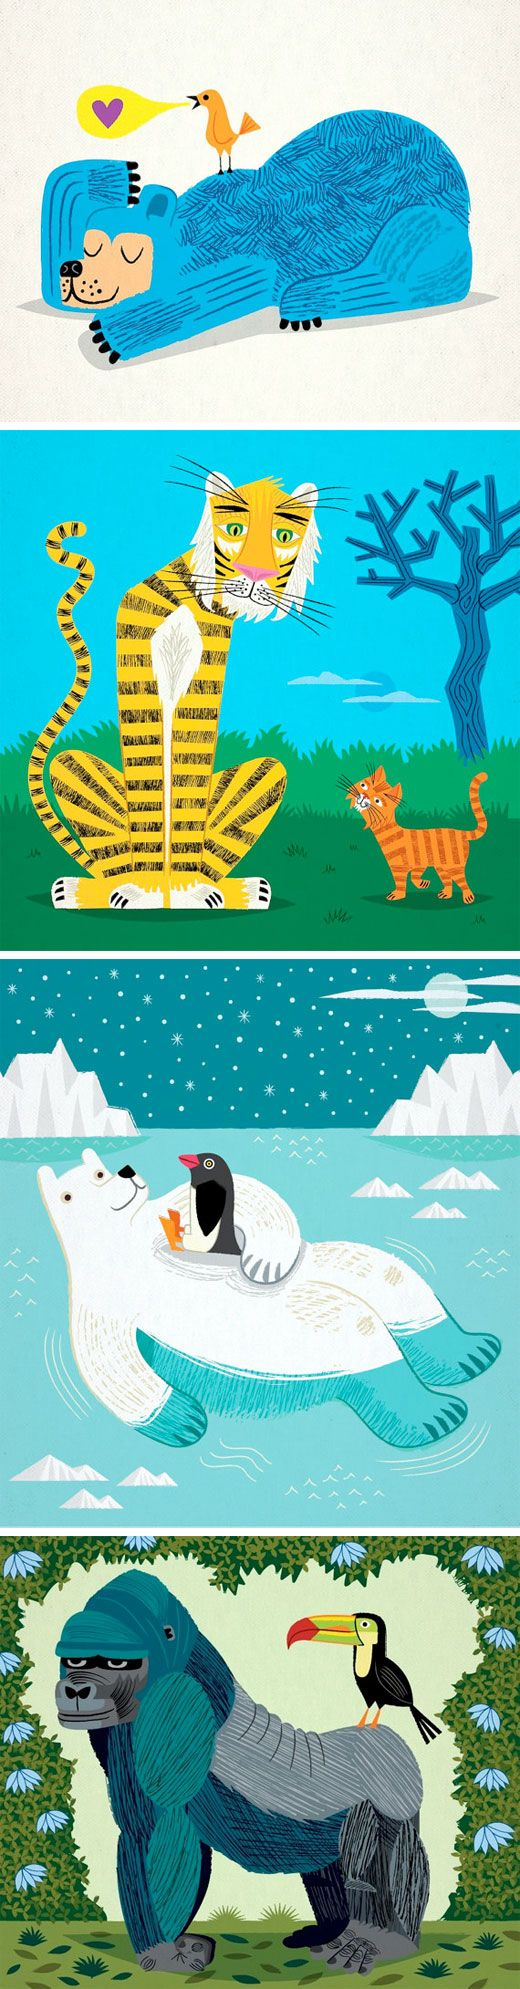 Oliver Lake from iota illustration is one of the coolest professional children's book illustrators around town.